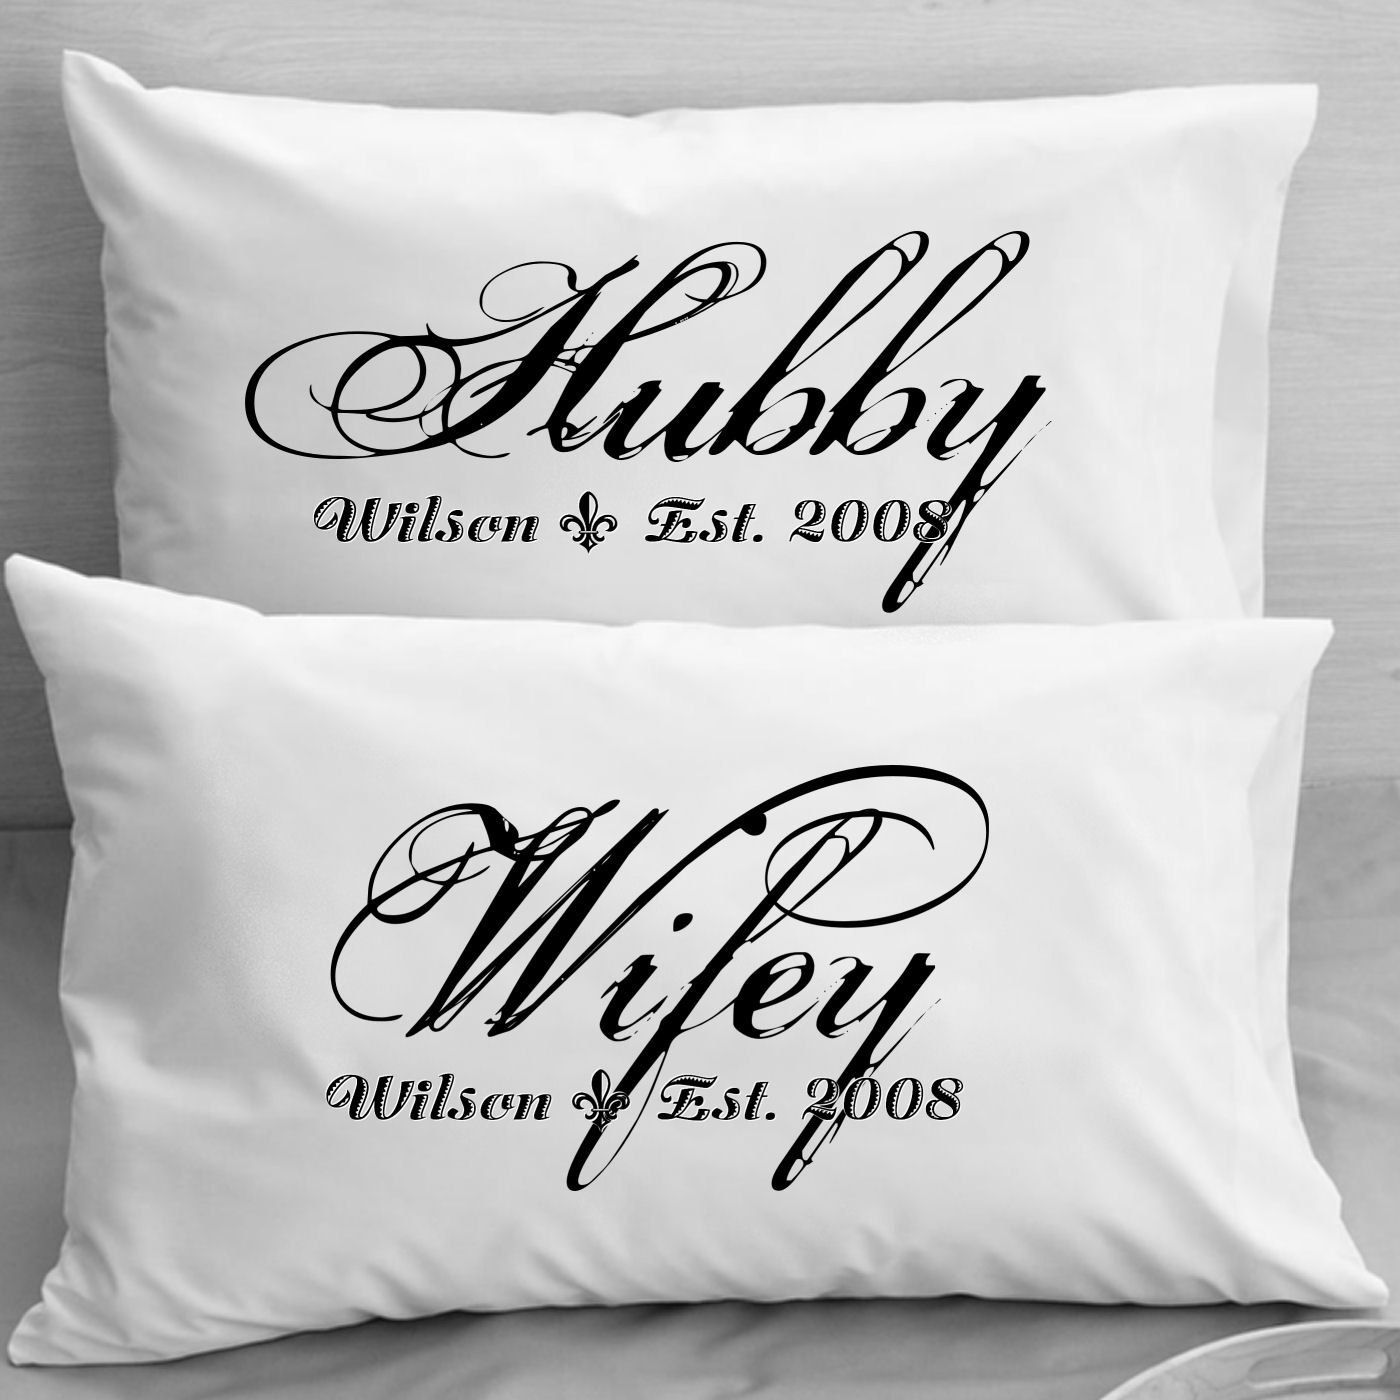 Pillow Case Cover Ideas: Couples Pillow Cases   Custom Personalized   Wifey Hubby Wife    ,